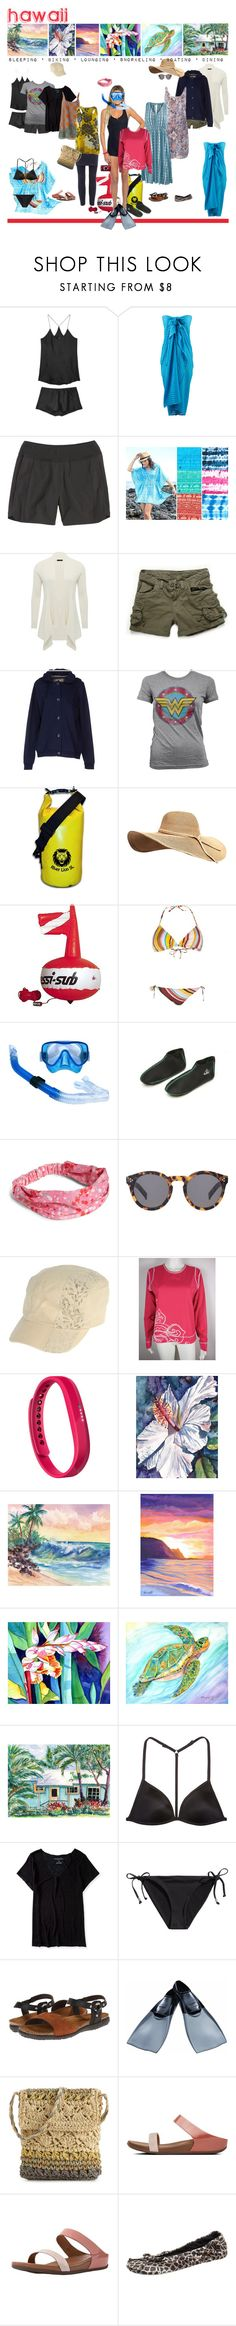 """""""Much Aloha 🌺"""" by neekdesign ❤ liked on Polyvore featuring Olivia von Halle, Peppermint Bay, Title Nine, M&Co, Match, Element, CAbi, CO, Vera Bradley and Illesteva"""